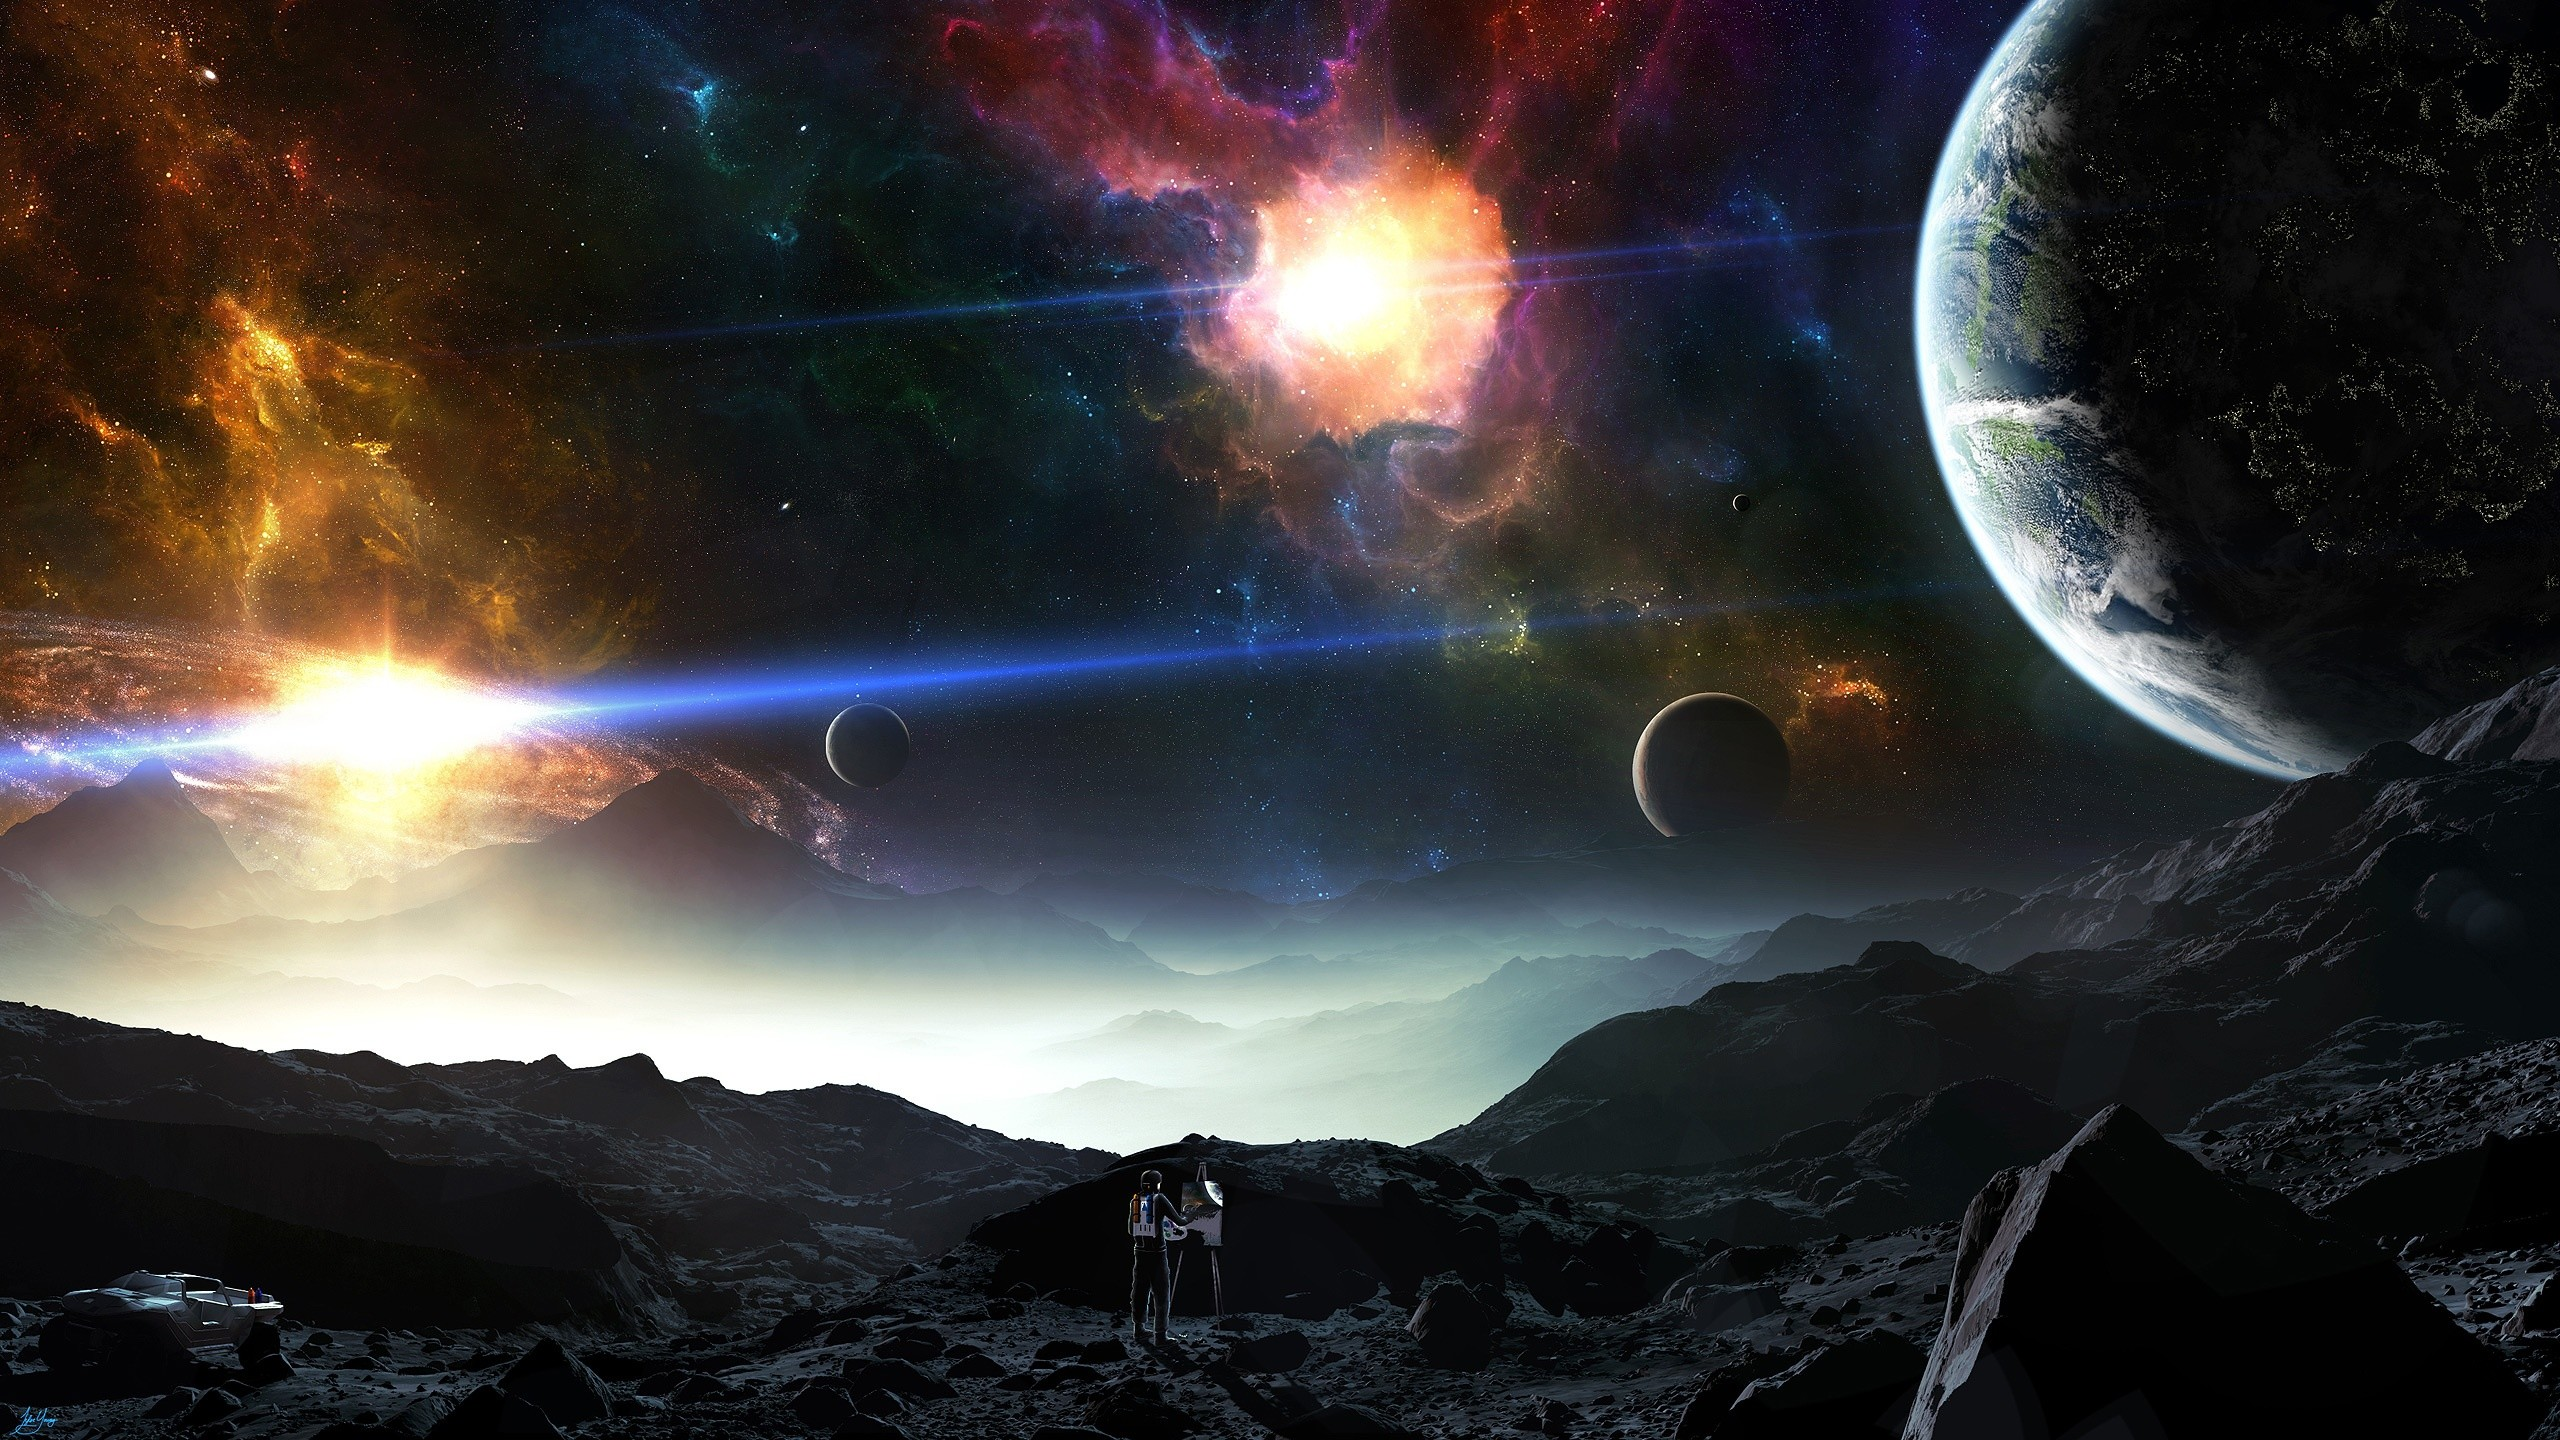 2560x1440 space wallpaper 81 images - Space solar system wallpaper ...